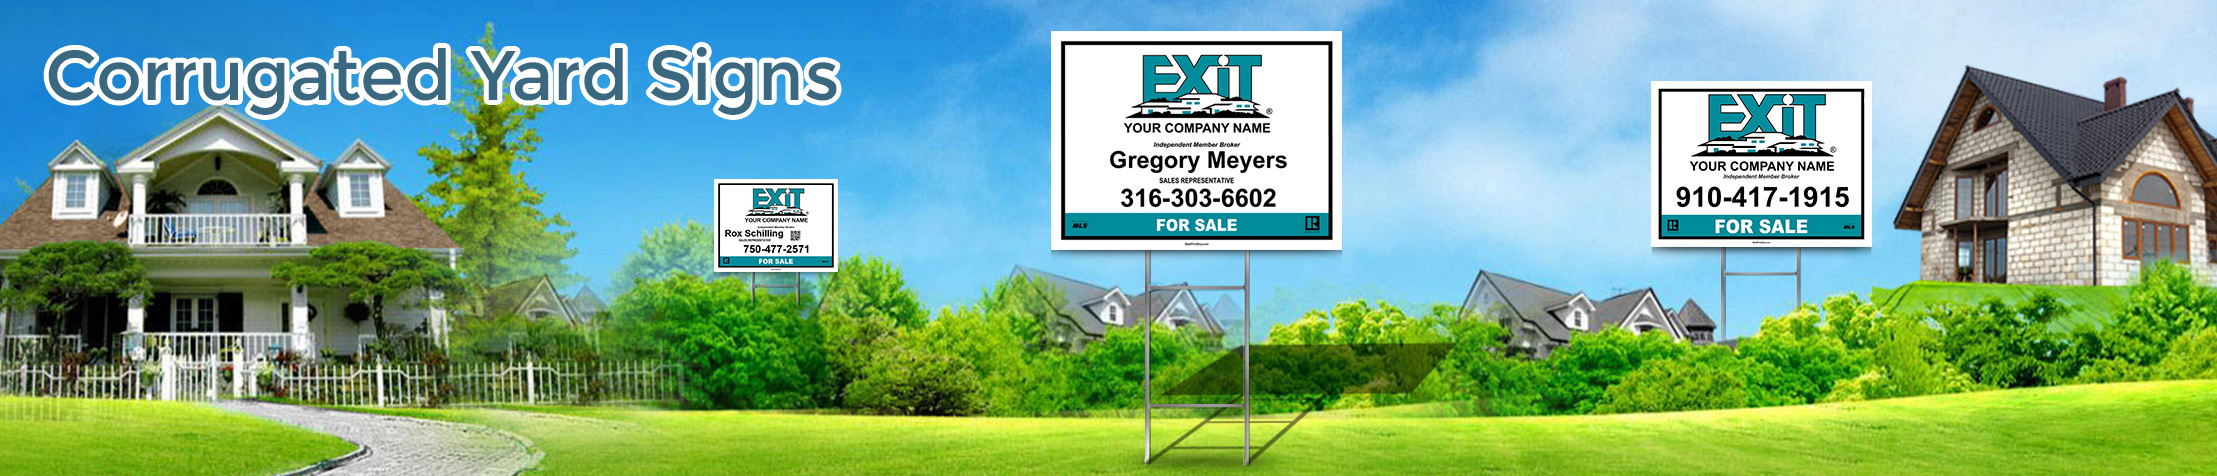 Exit Realty Corrugated Yard Signs - Exit Realty approved vendor real estate signs | BestPrintBuy.com